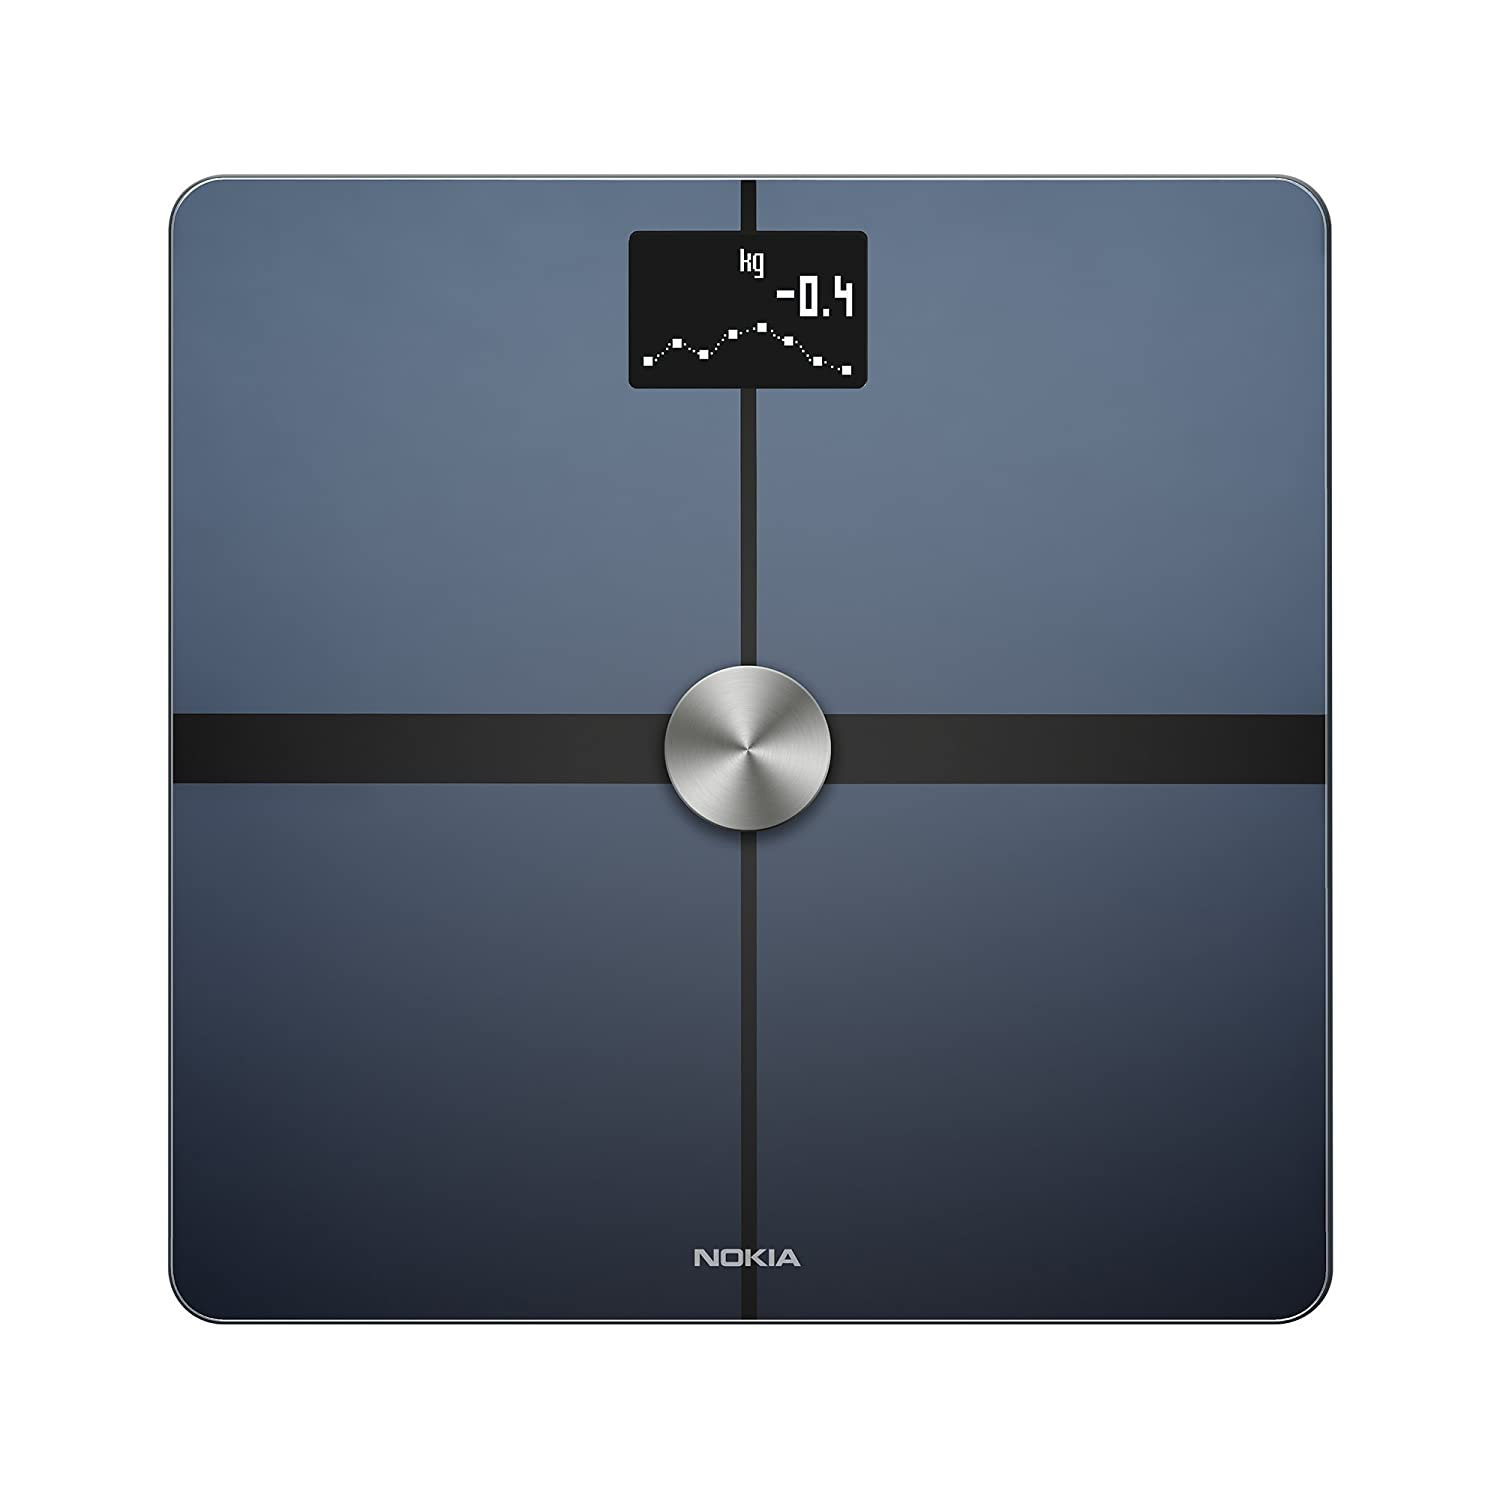 Electronic Scales Bathroom - Nokia body body composition wi fi scale black